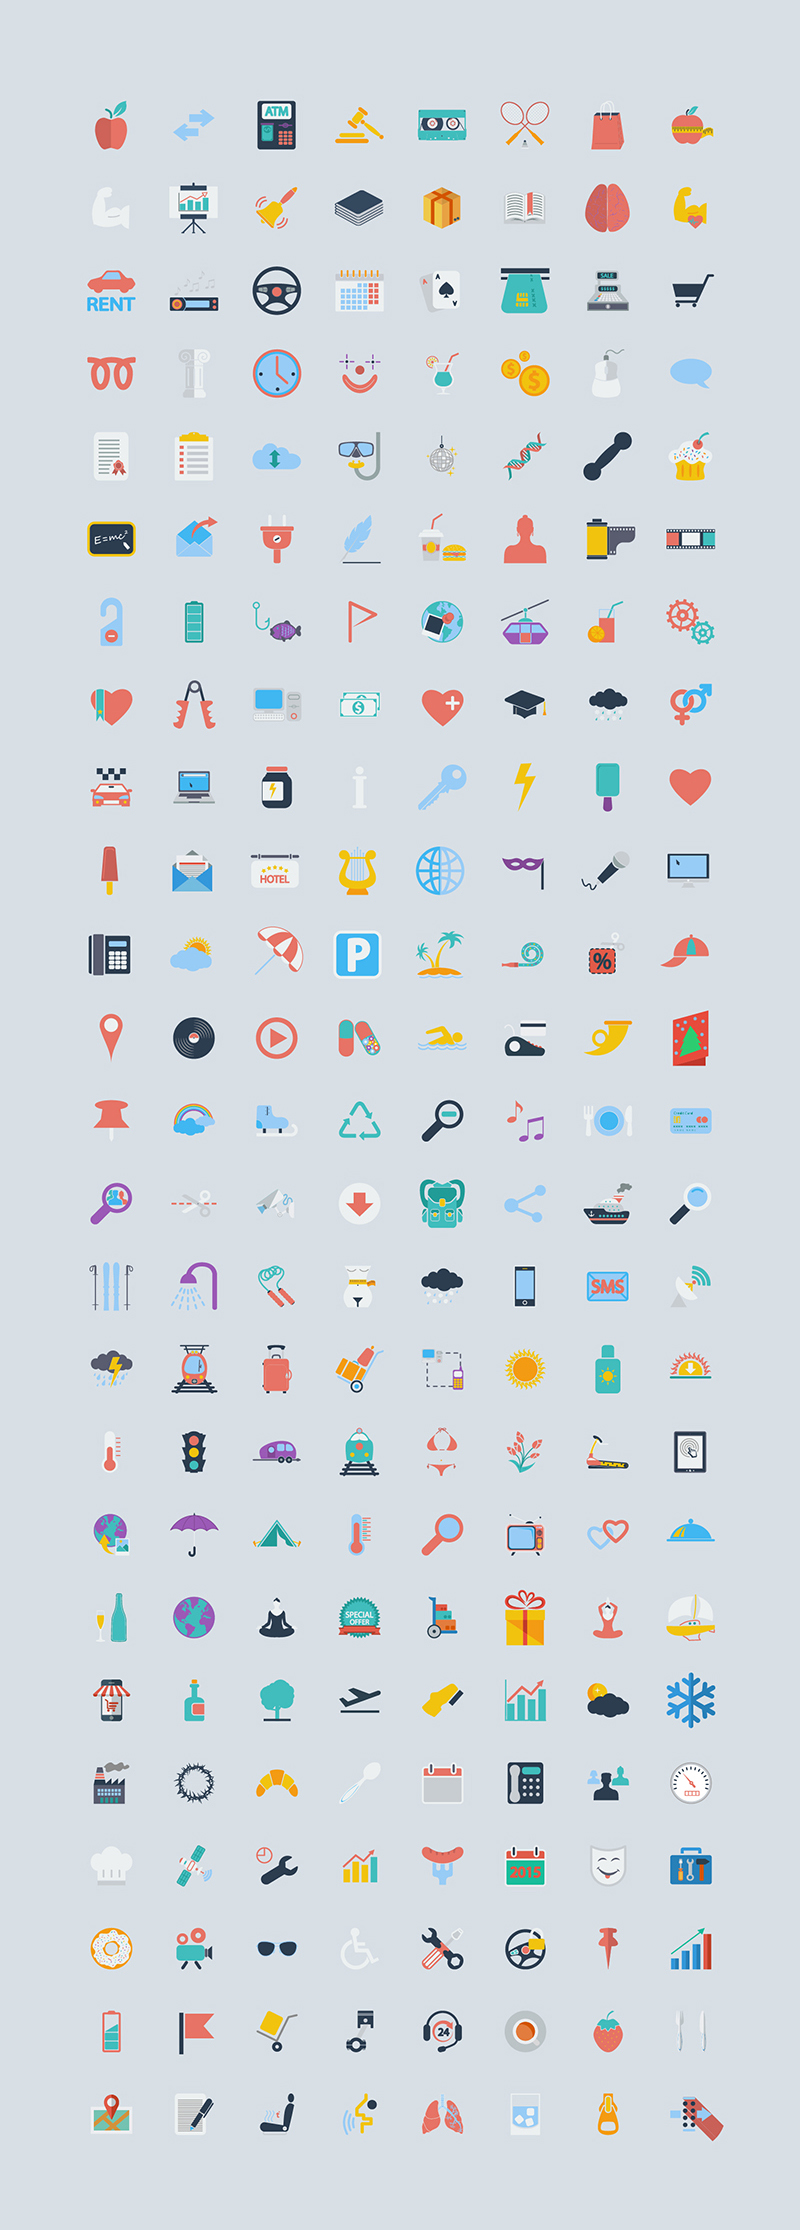 400 Free Icons of the World - Graphic Google - Tasty Graphic Designs Collection